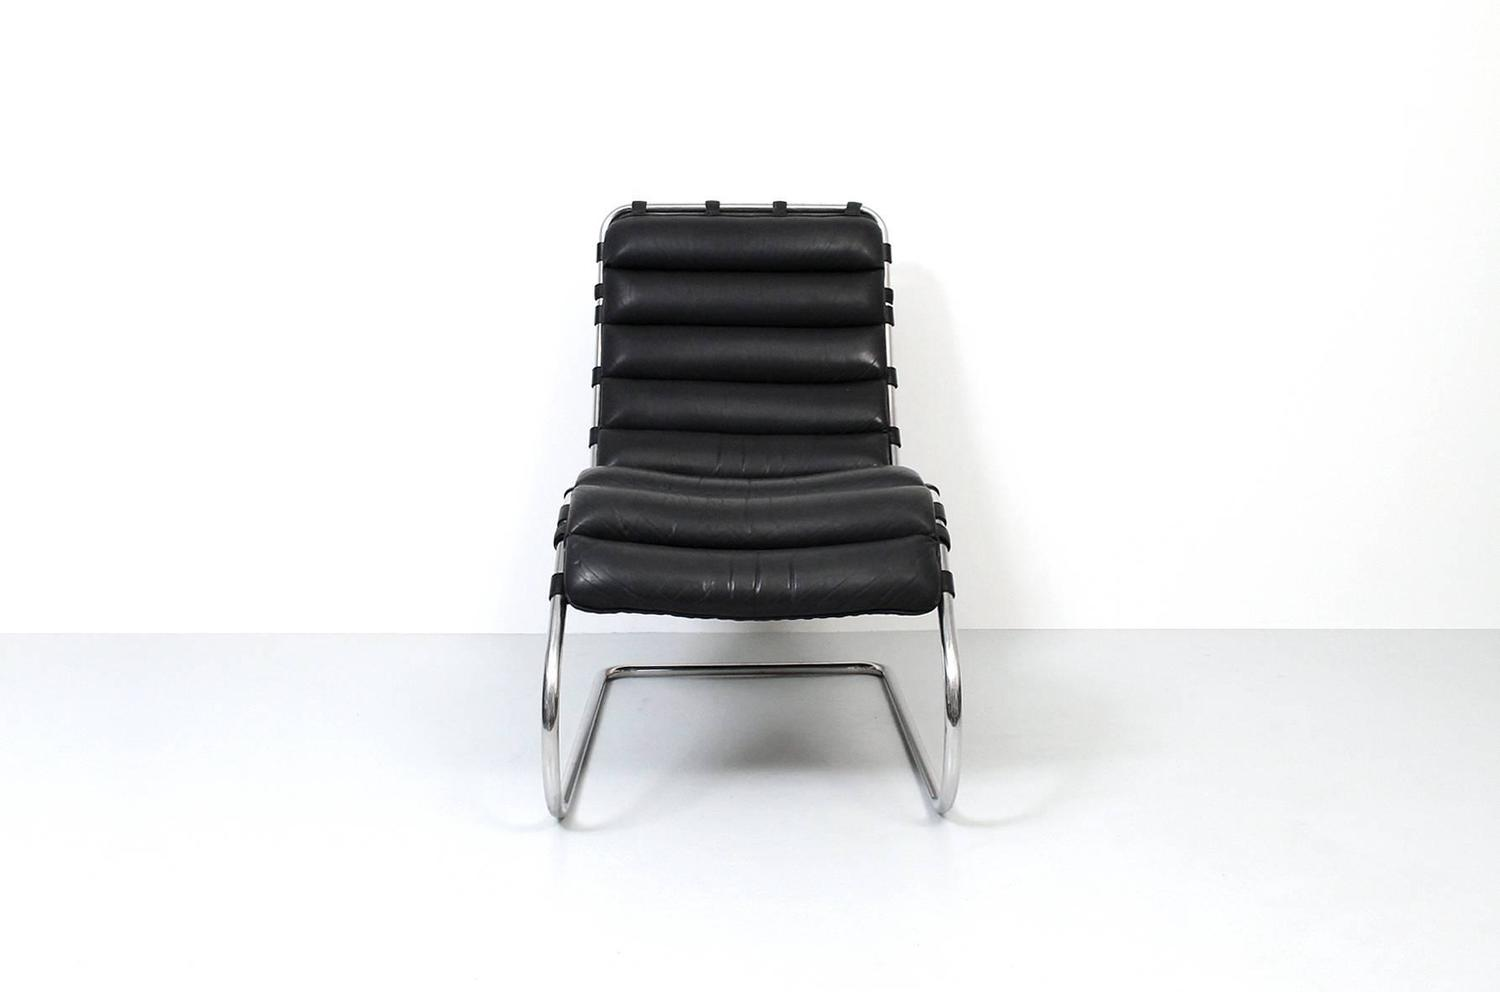 mies mr chaise lounge chair for knoll for sale at 1stdibs. Black Bedroom Furniture Sets. Home Design Ideas